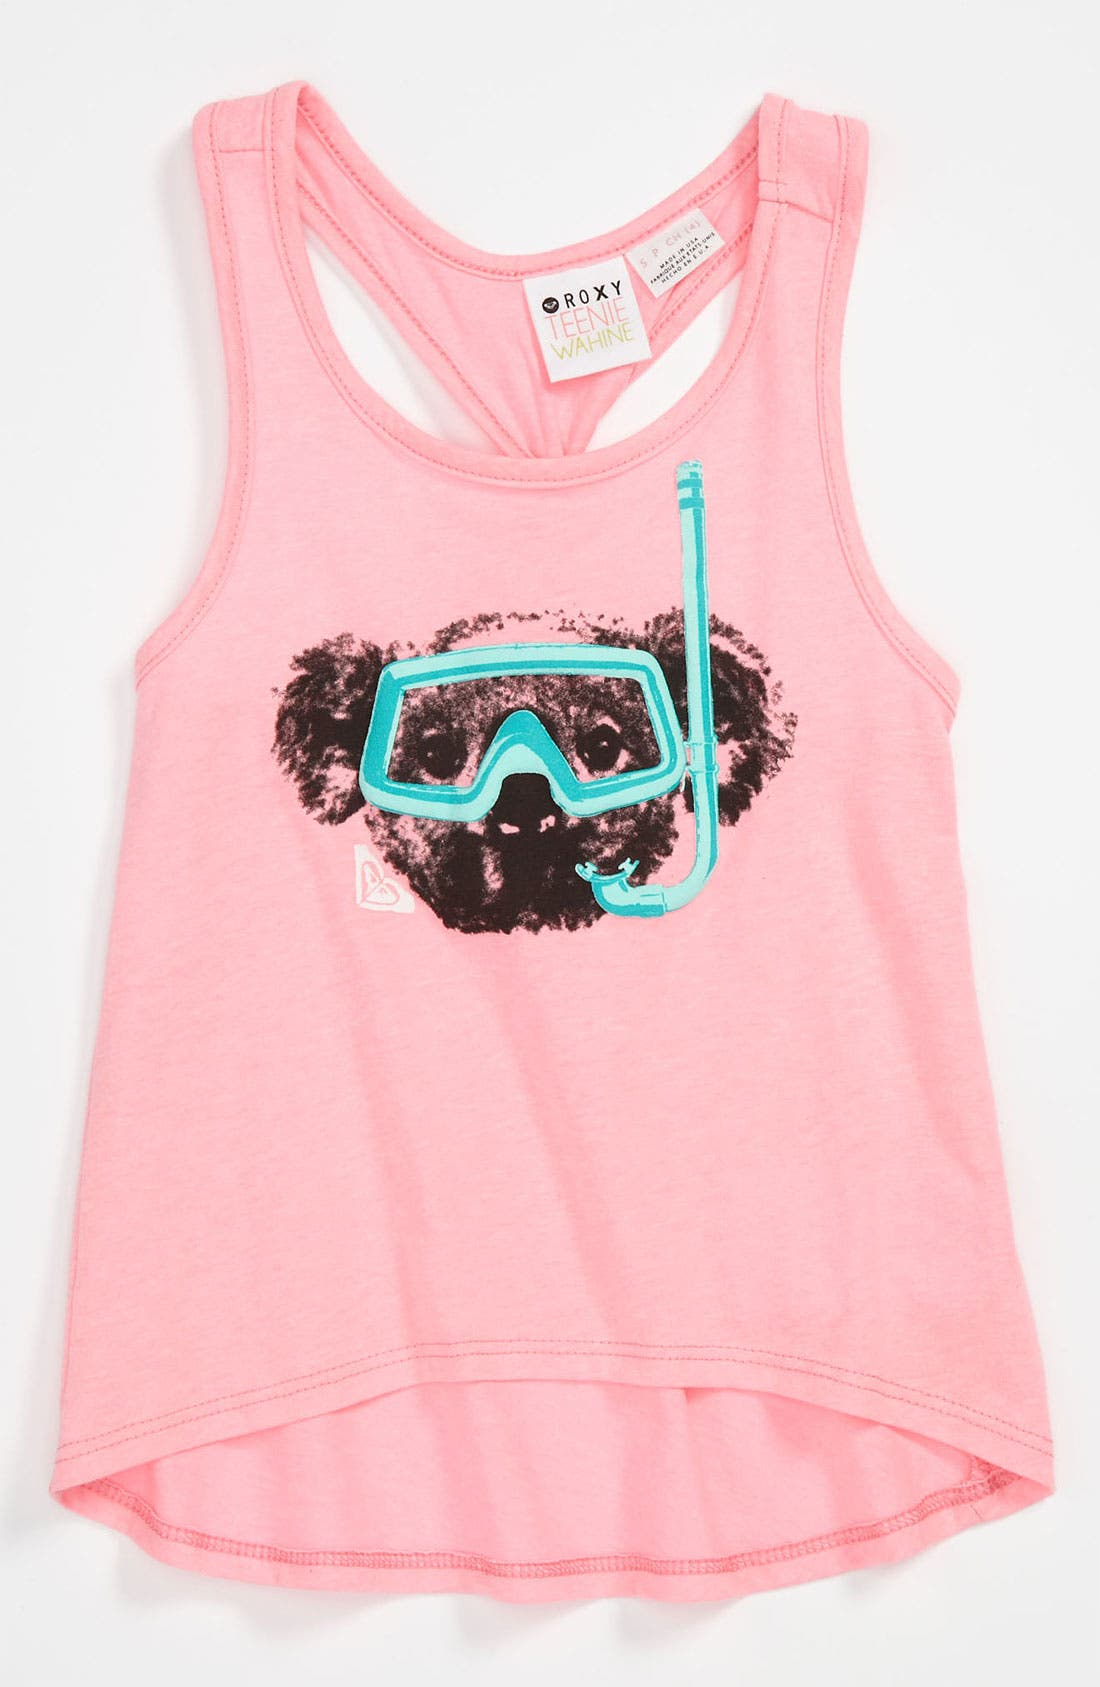 Main Image - 'Alamo Freeze' Racerback Tank Top (Little Girls)